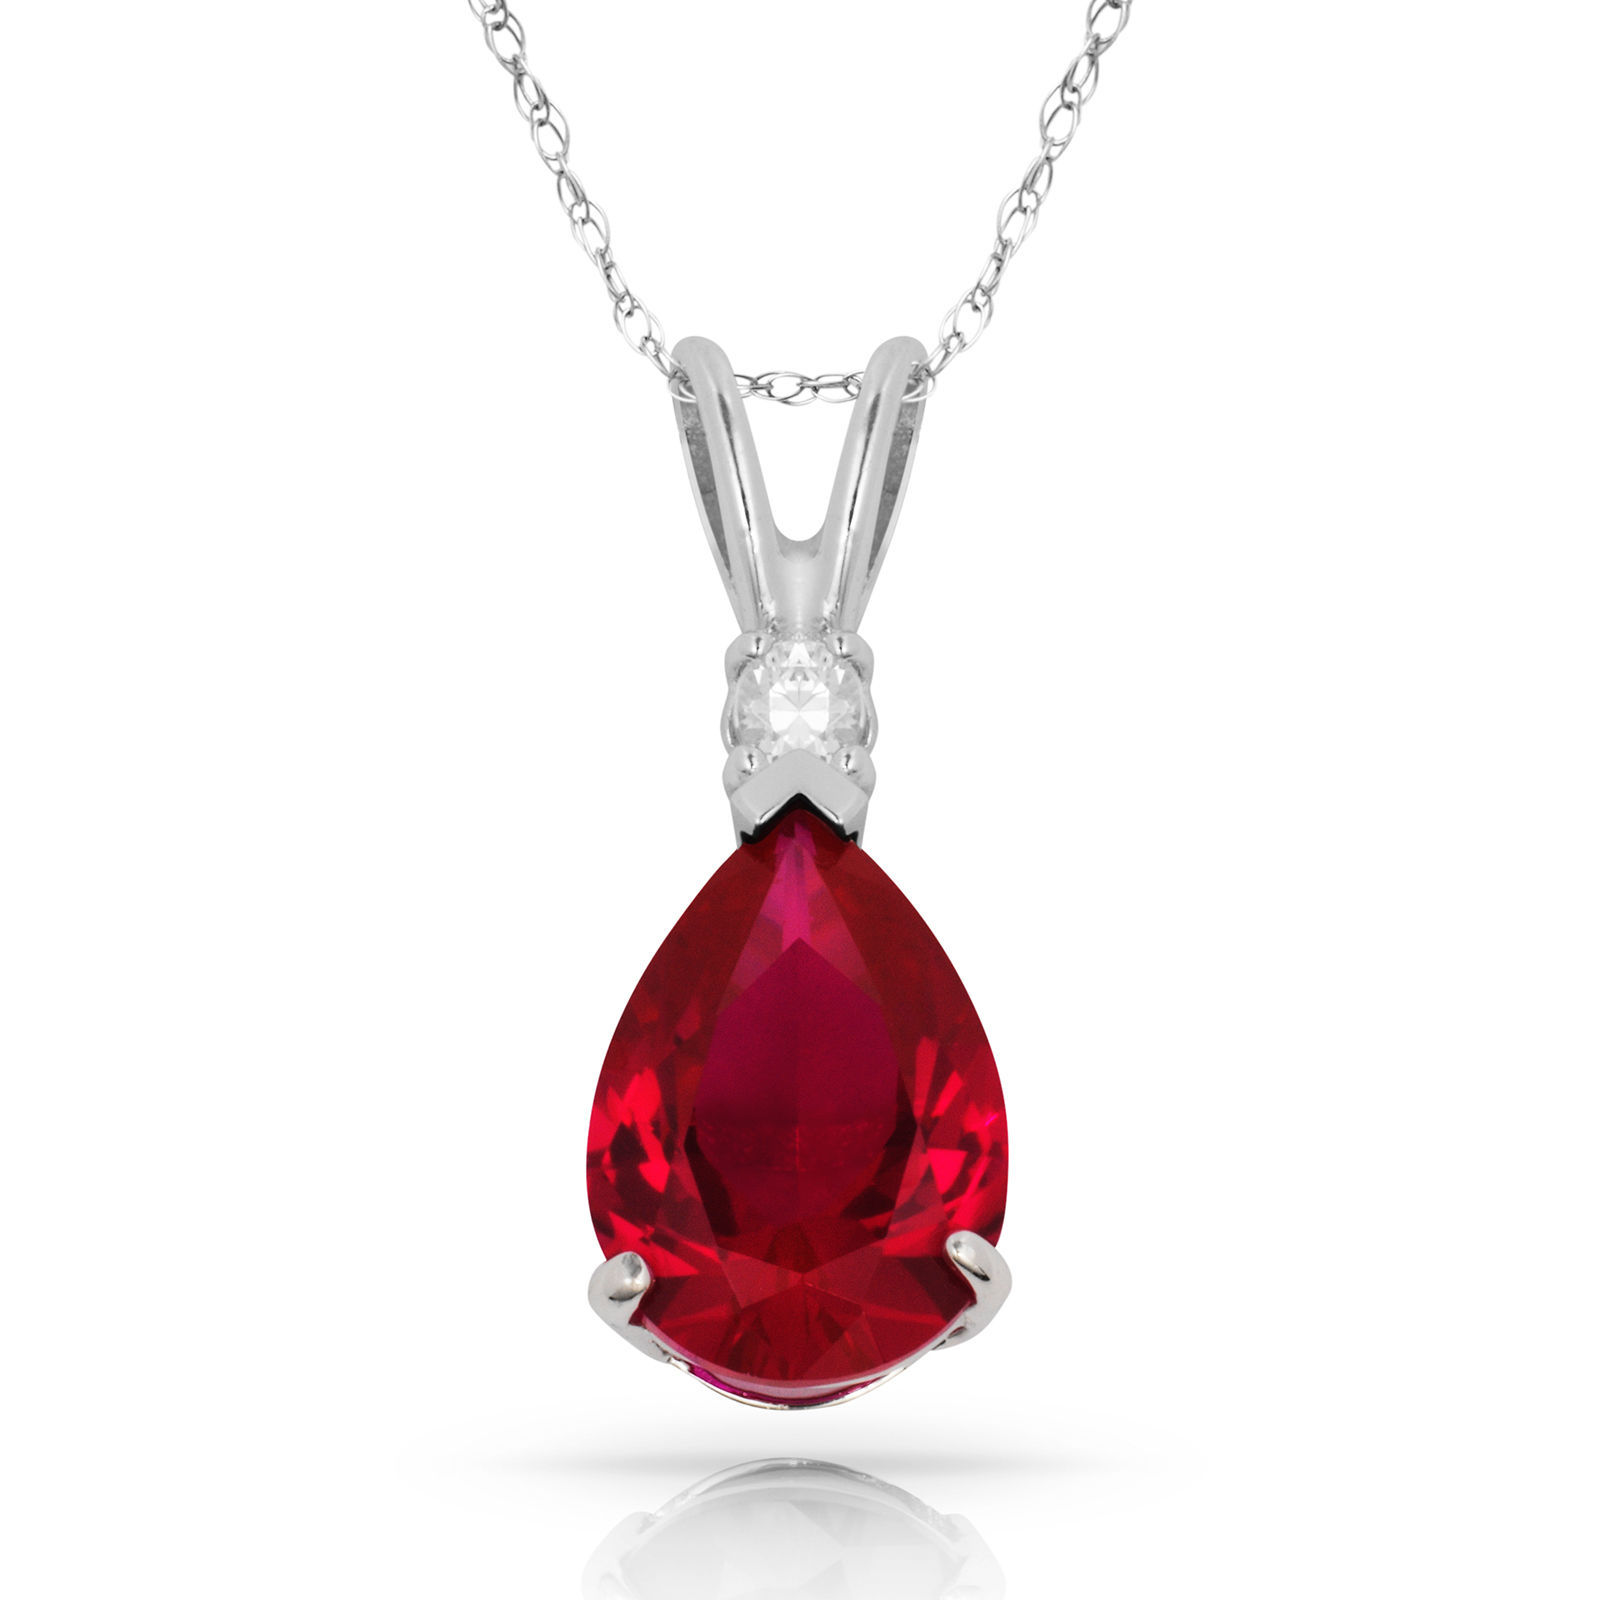 3.05 CT Red Ruby Pear Shape 2 Stone Gemstone Pendant & Necklace 14K W Gold